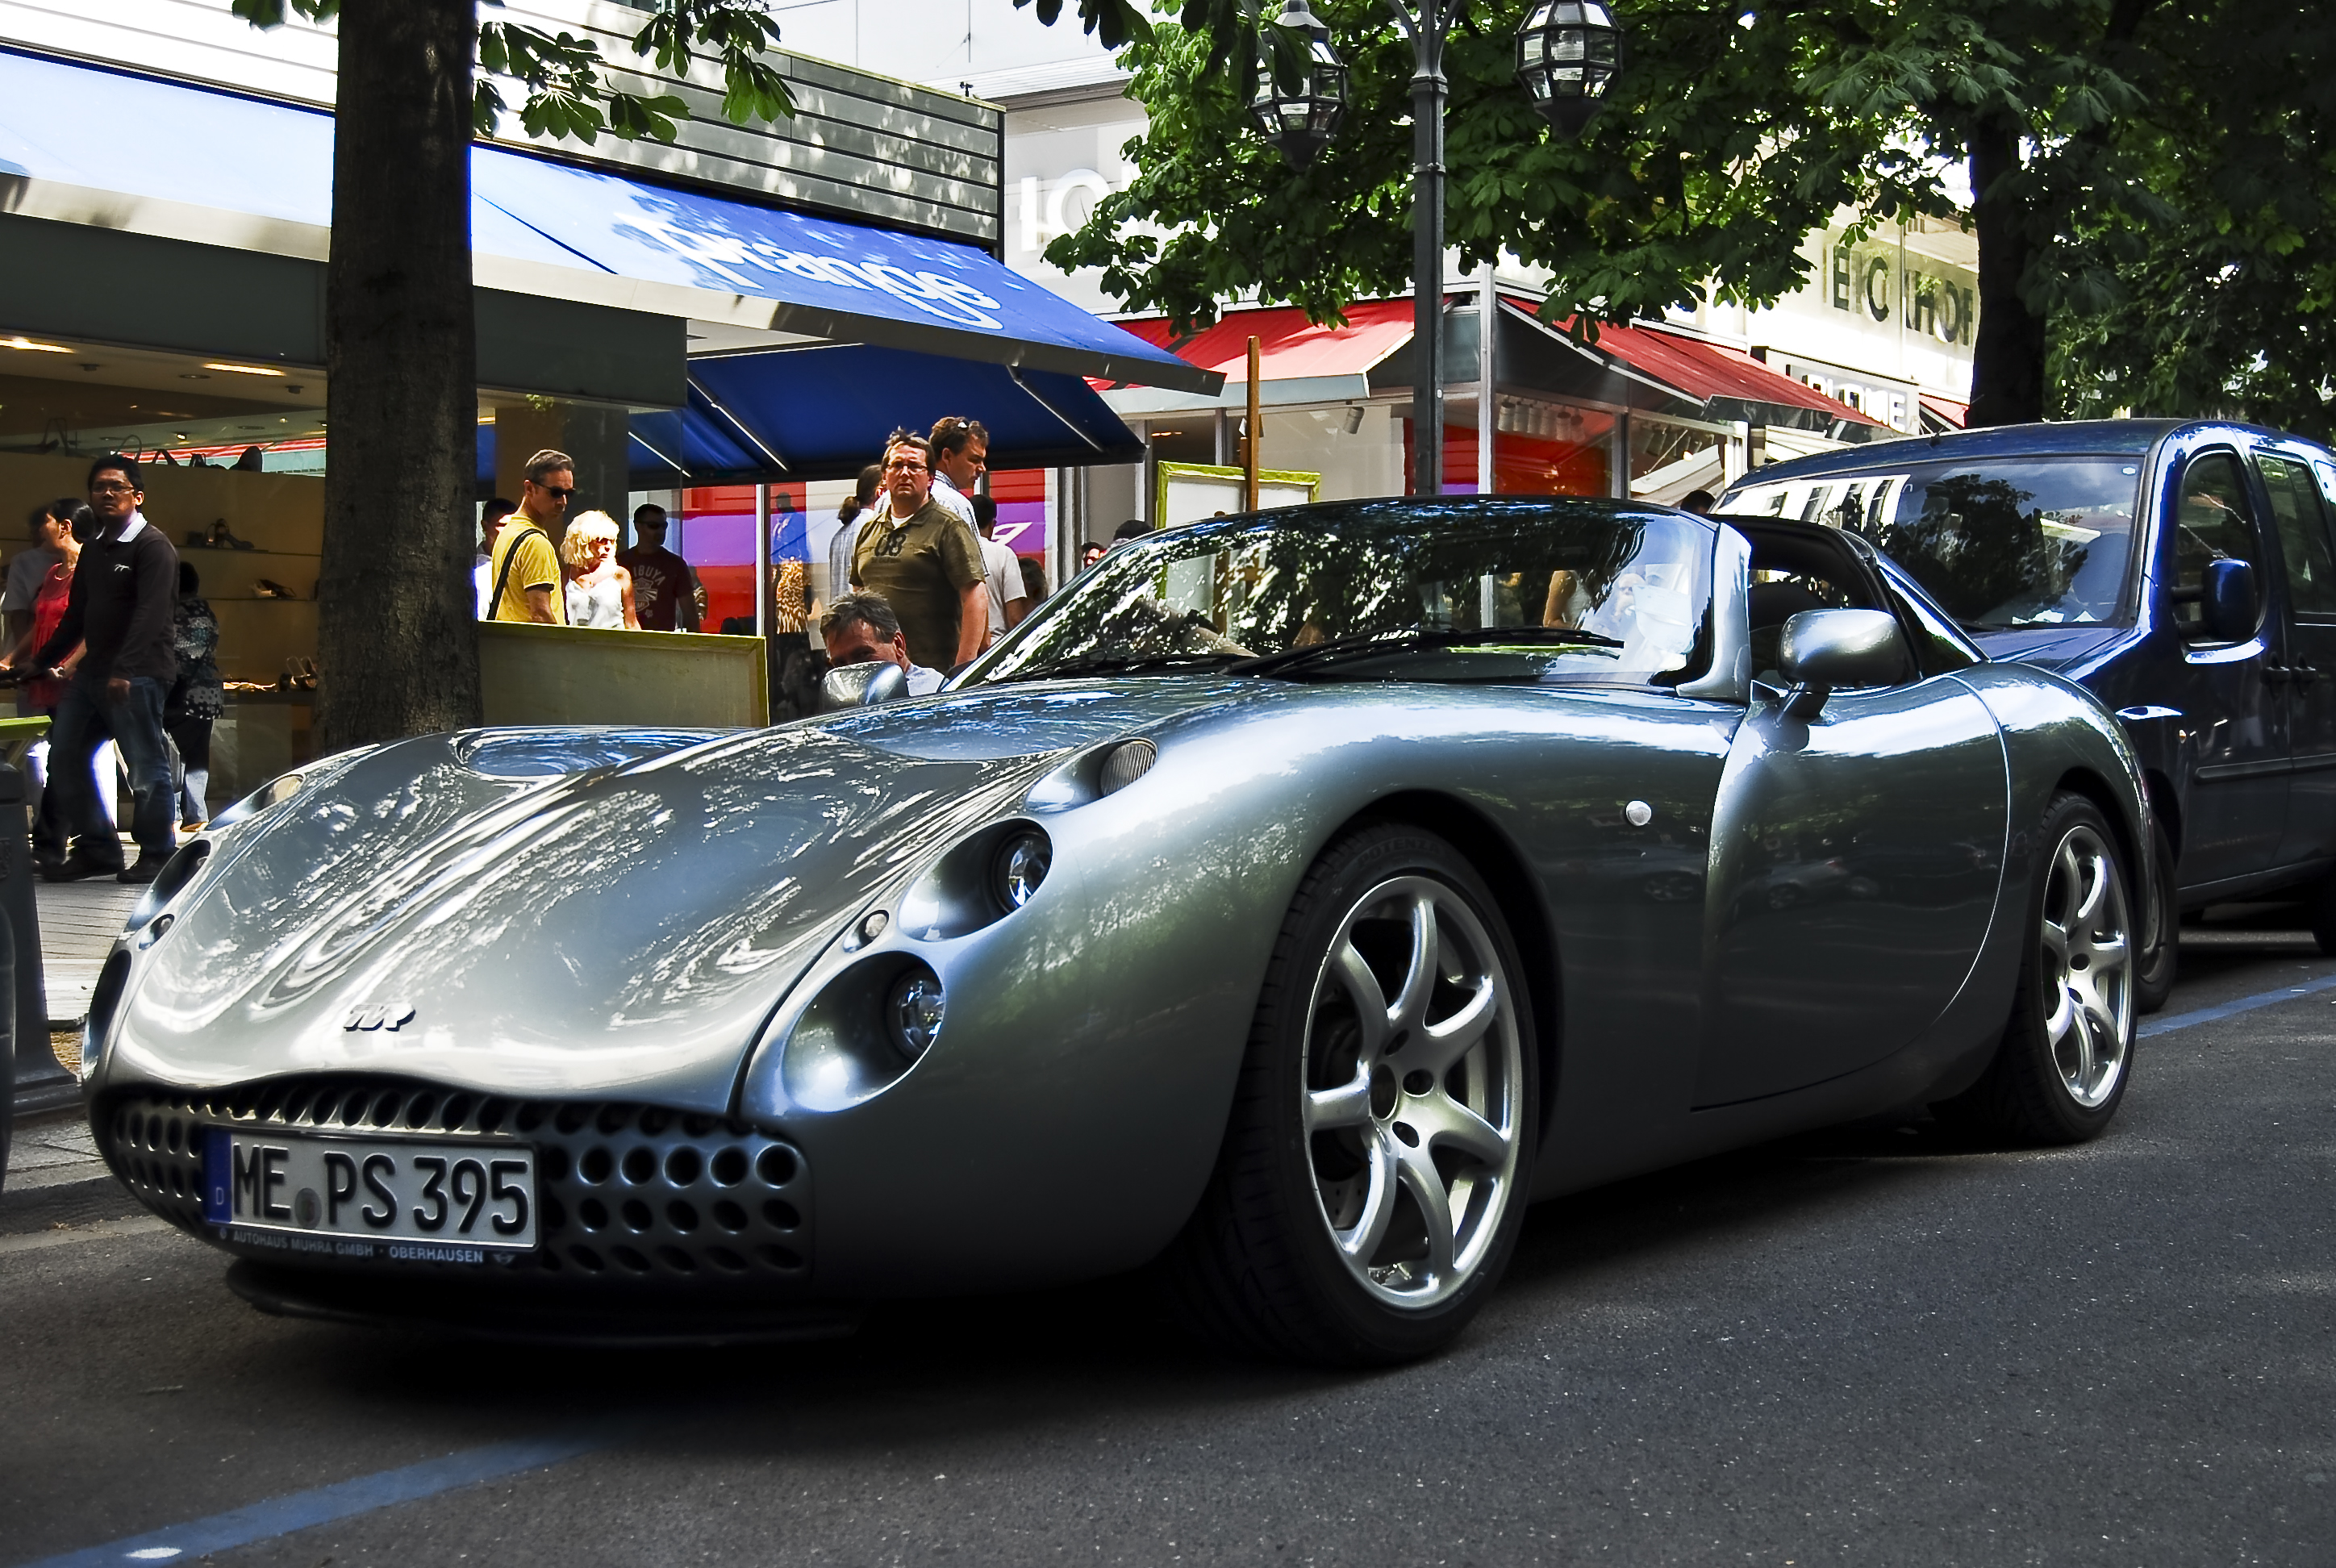 Dreamcar:TVR Tuscan by